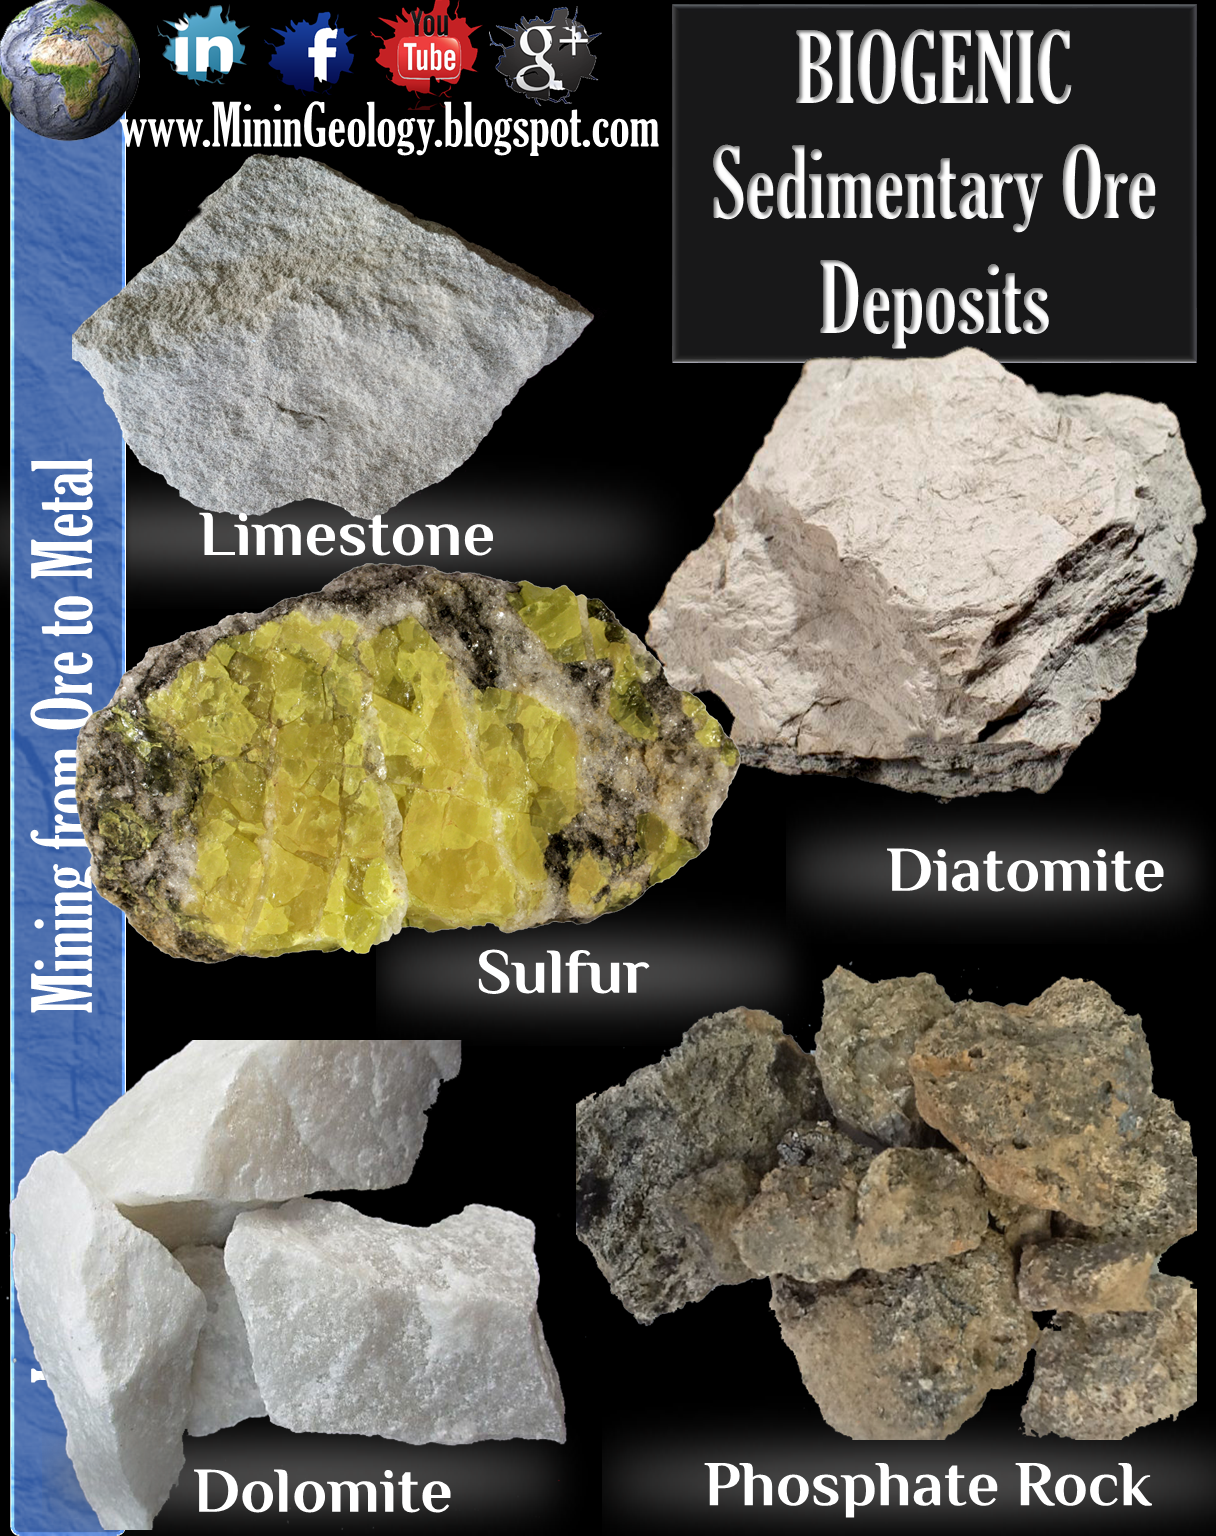 Biogenic Sedimentary Ore Deposits